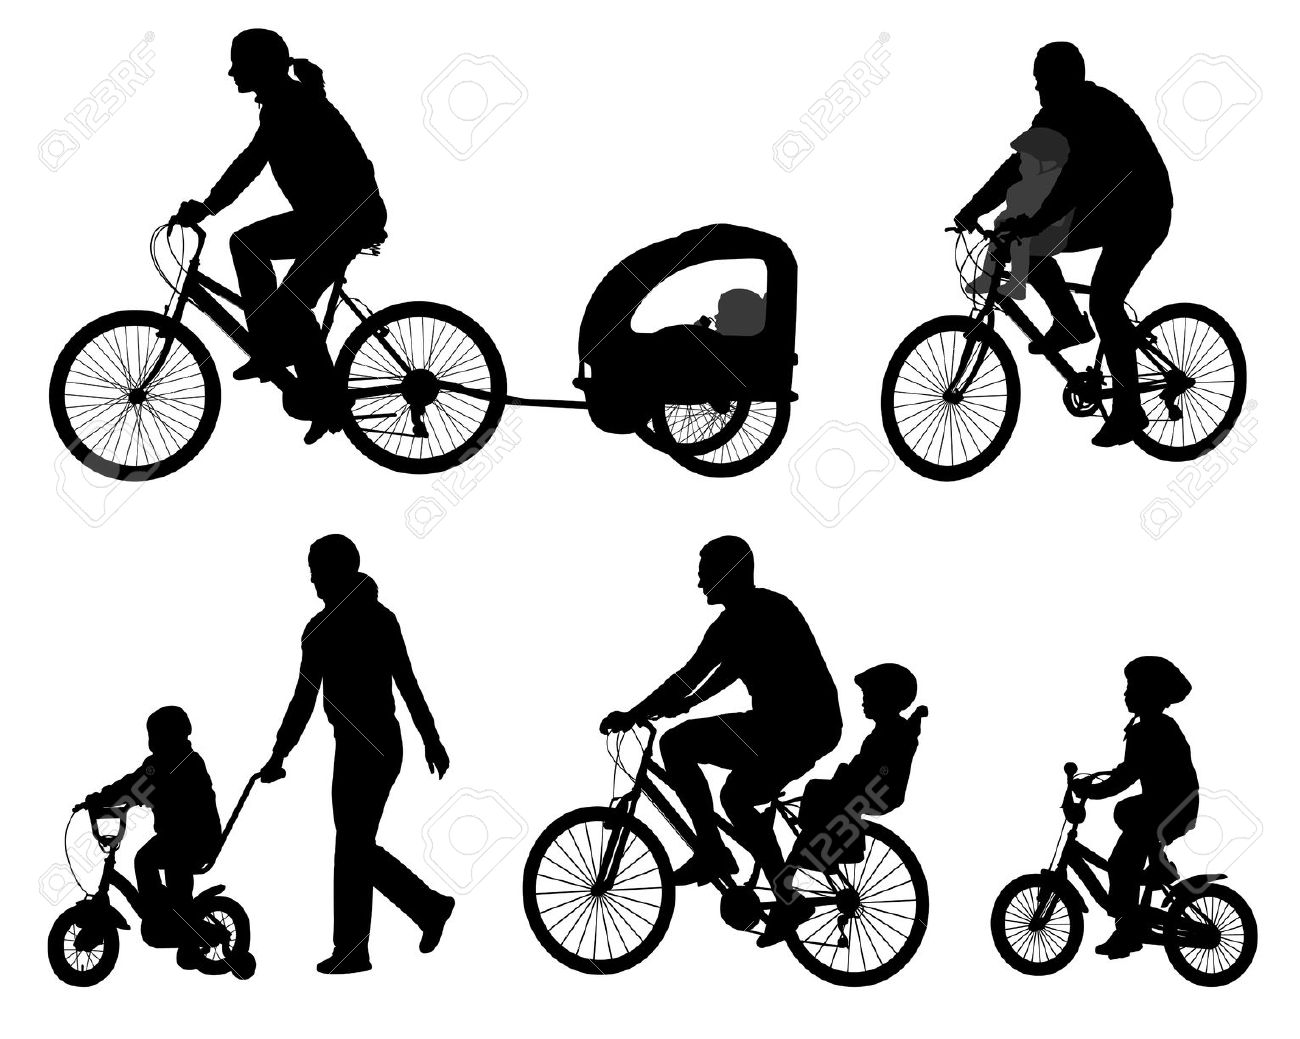 Silhouette clipart of kids riding bikes.